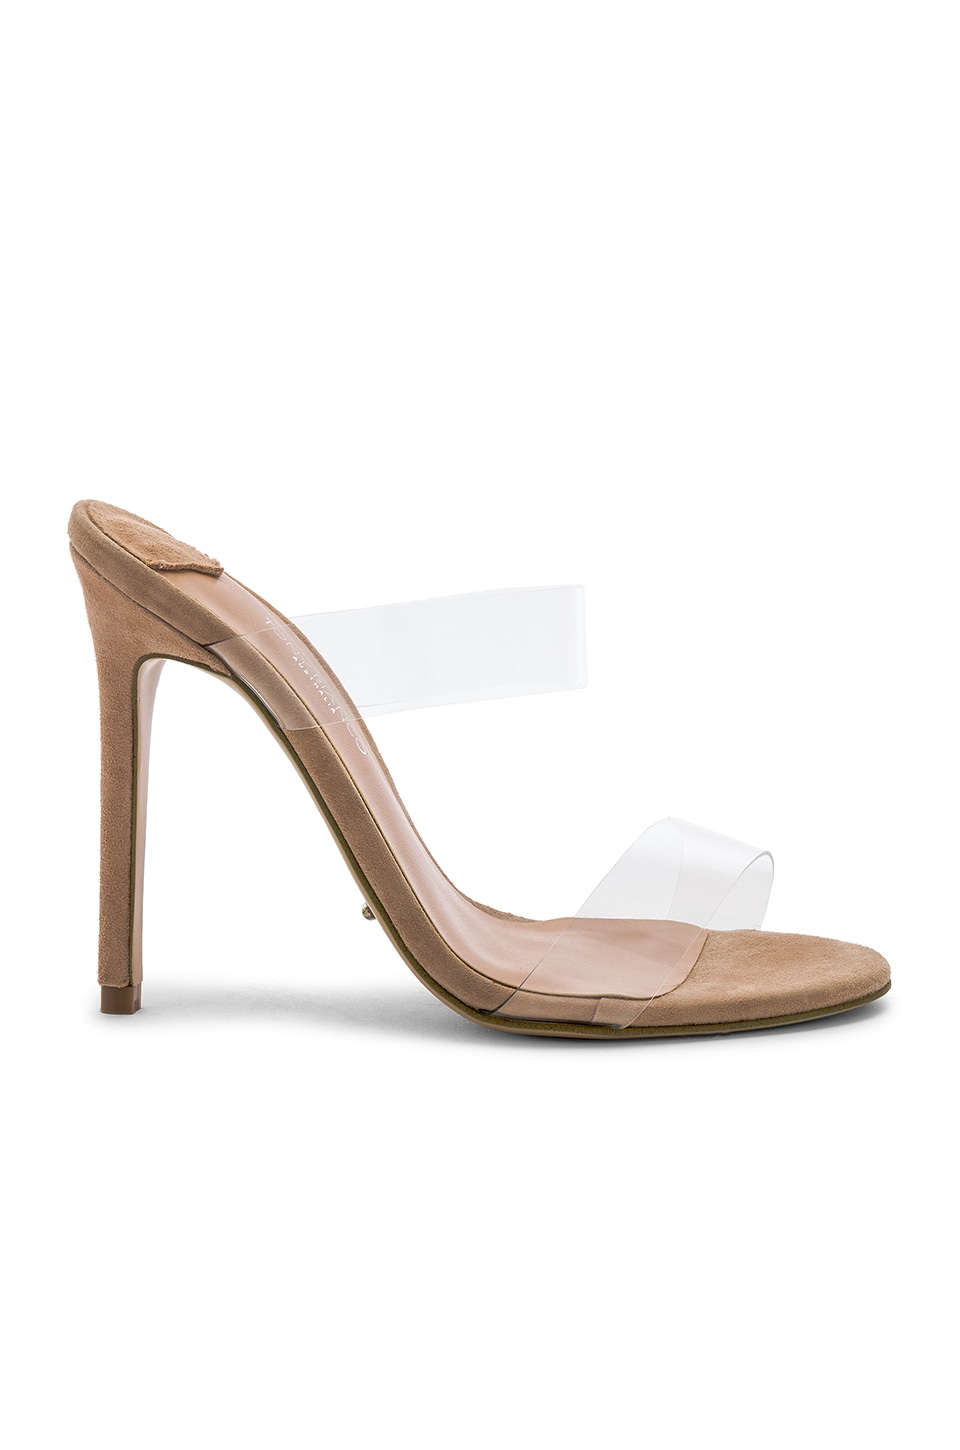 Tony Bianco Kade Heel in Clear Vynalite & Blush Kid Suede